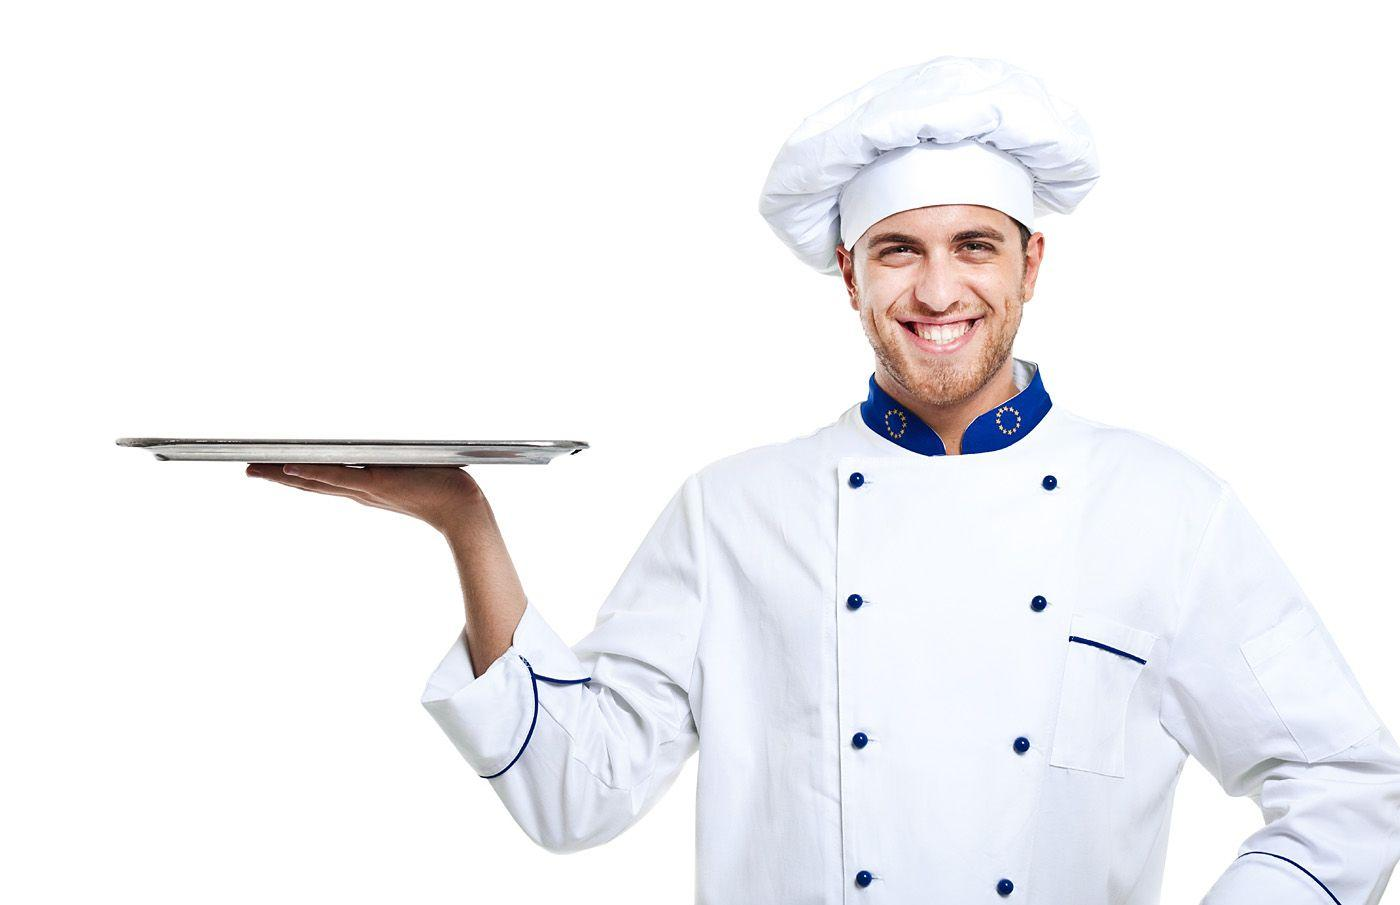 High Quality Chef Wallpaper | Full HD Pictures